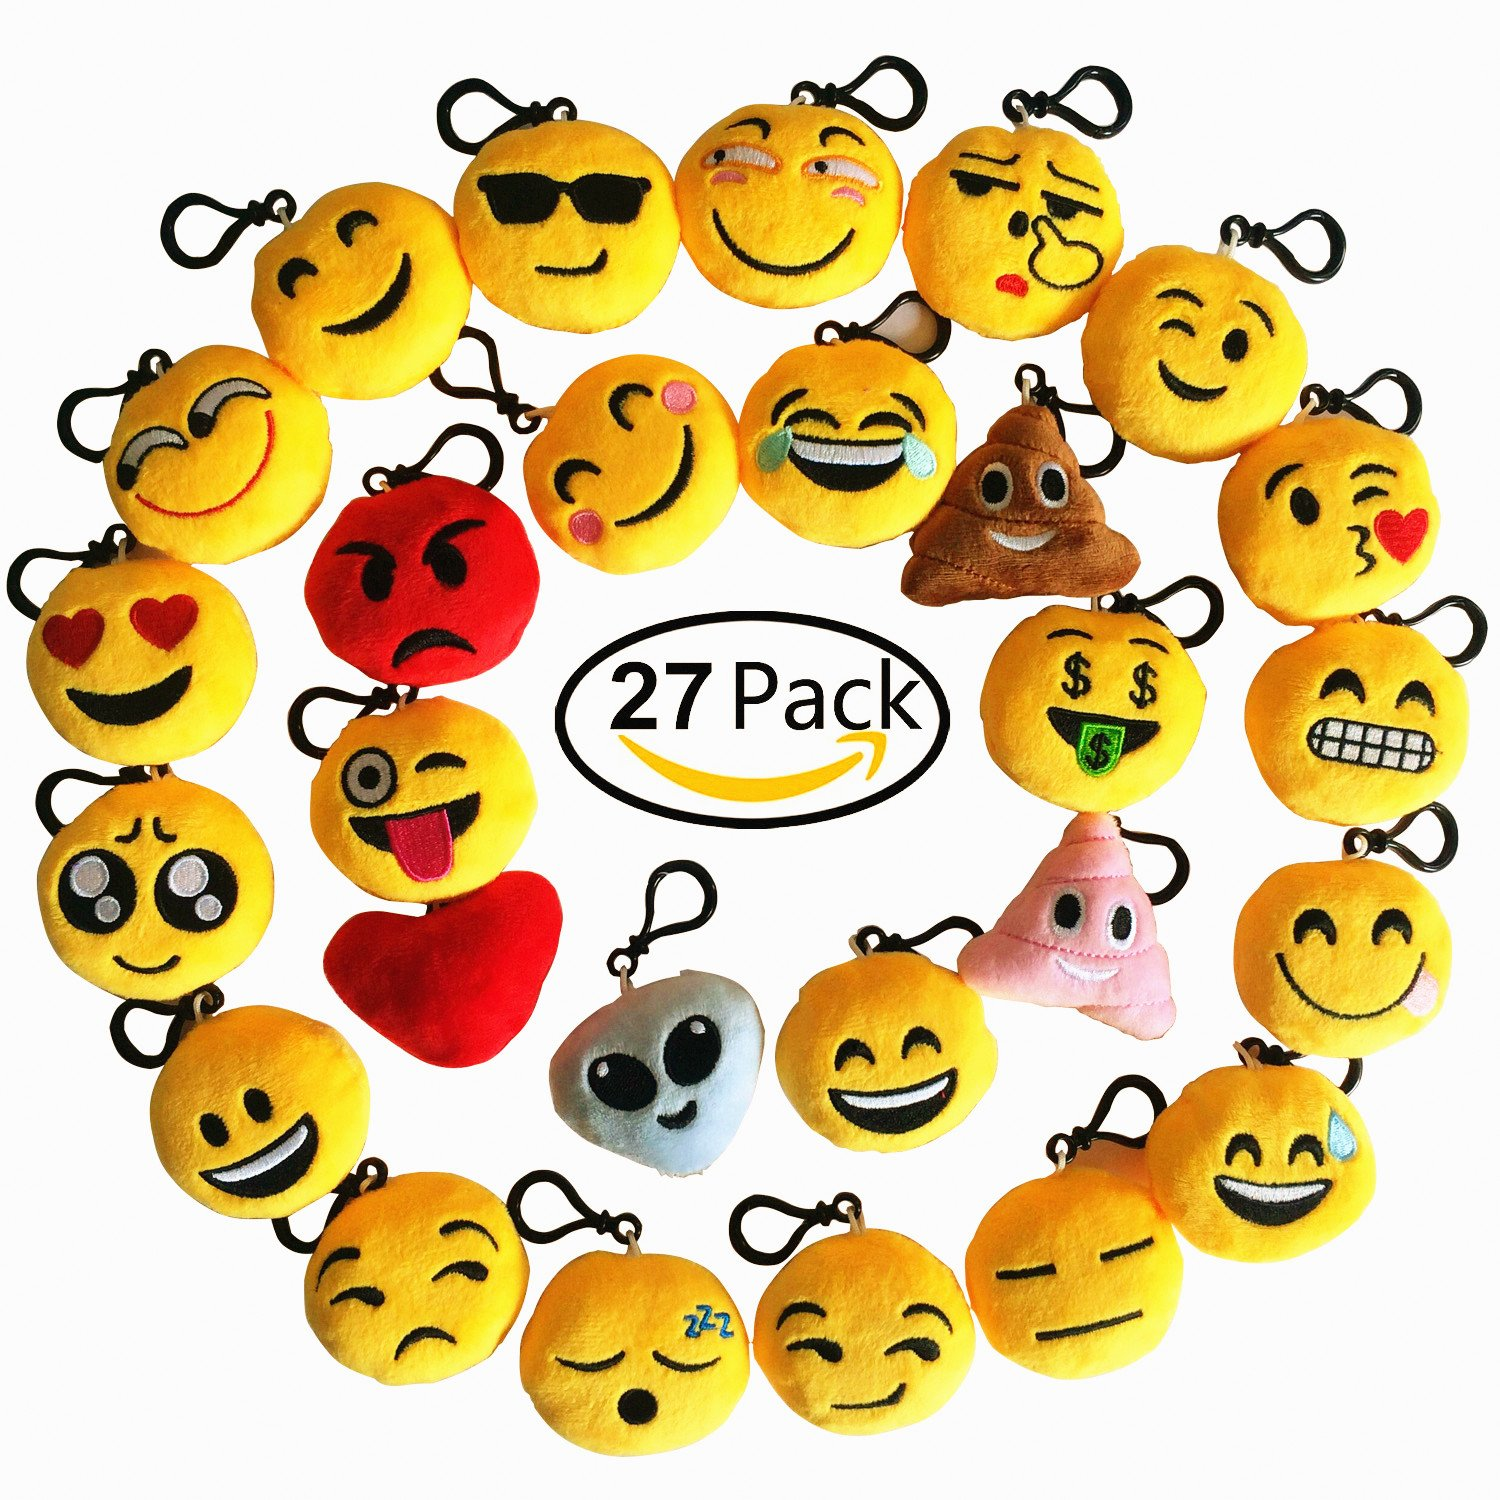 Online cheap wholesale time killer emoji keychain 27 pack birthday party supplies favors gift for kids students christmas party favors suppliers